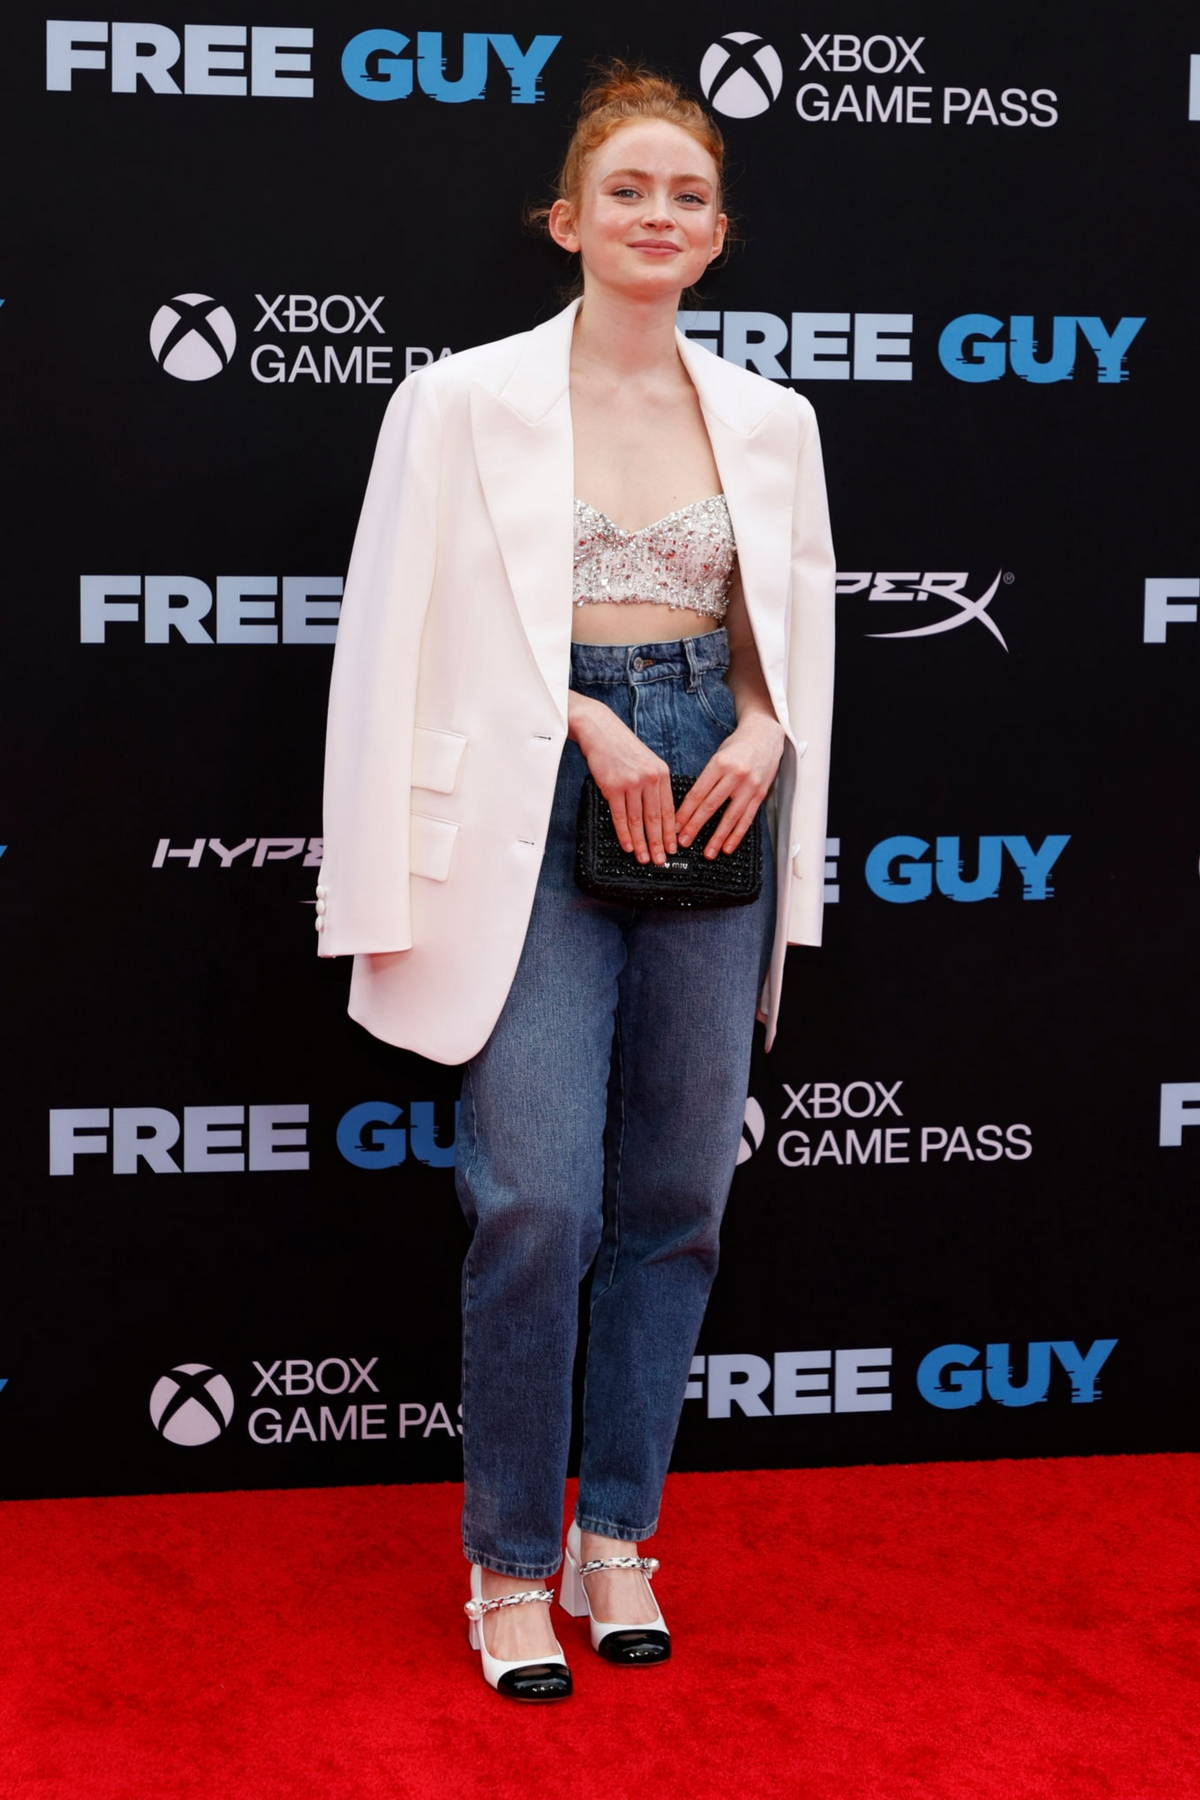 Sadie Sink attends the Premiere of 'Free Guy' at AMC Lincoln Square Theater in New York City